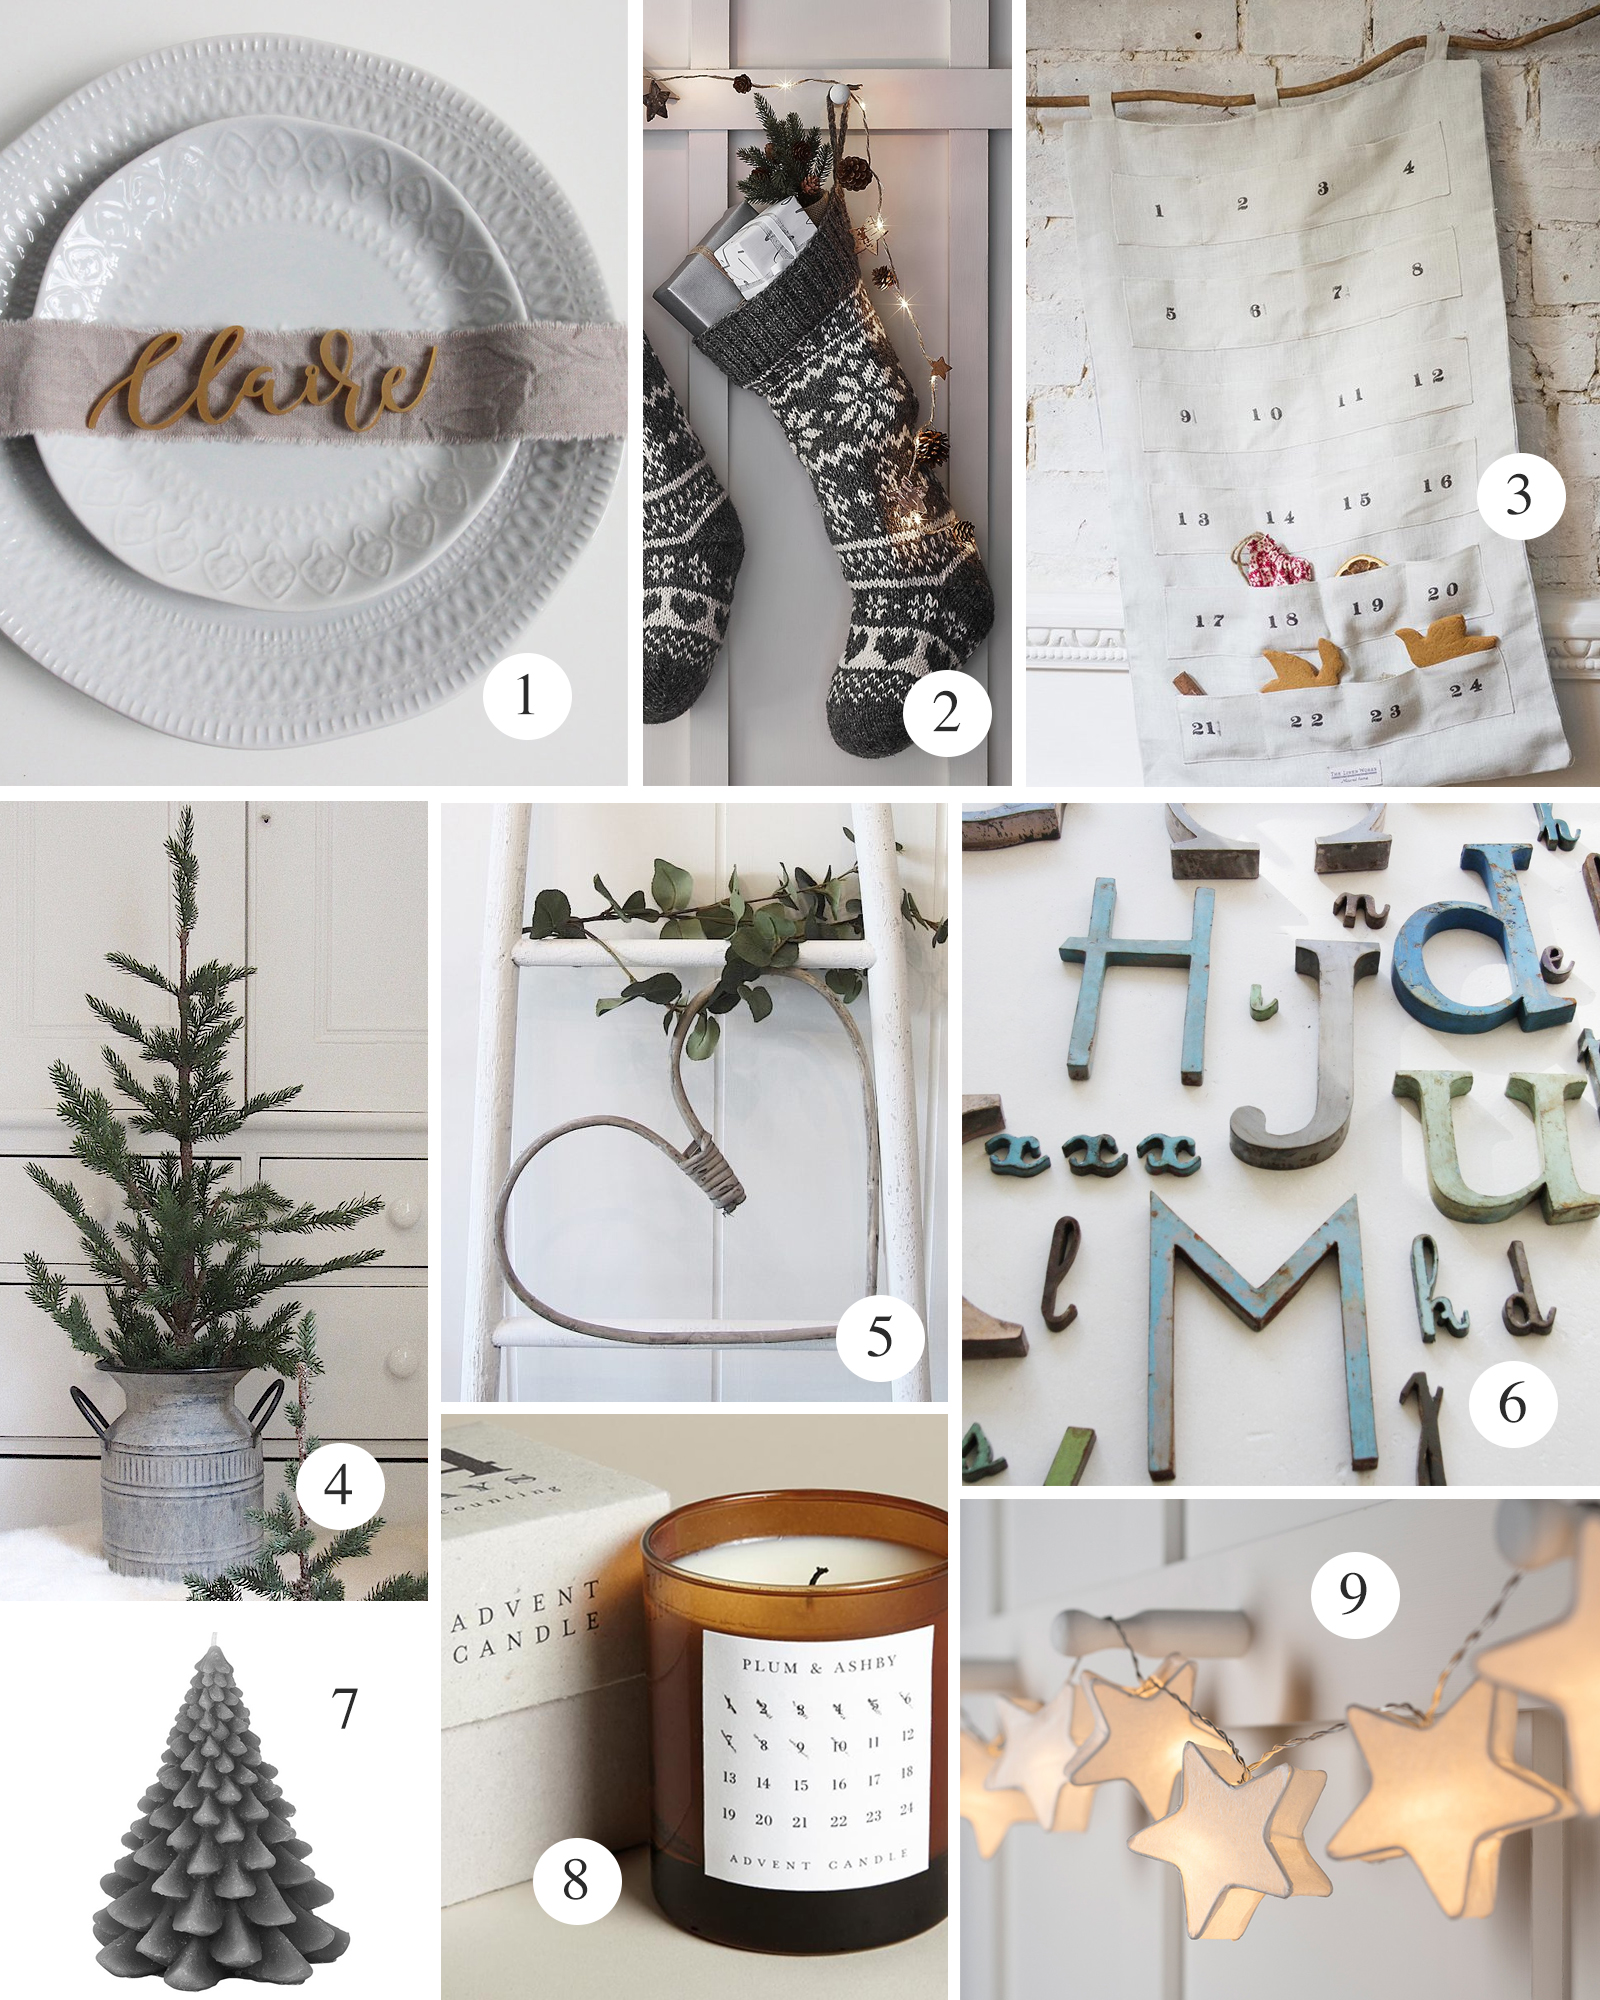 Fabulous Places christmas list 2 table and decor